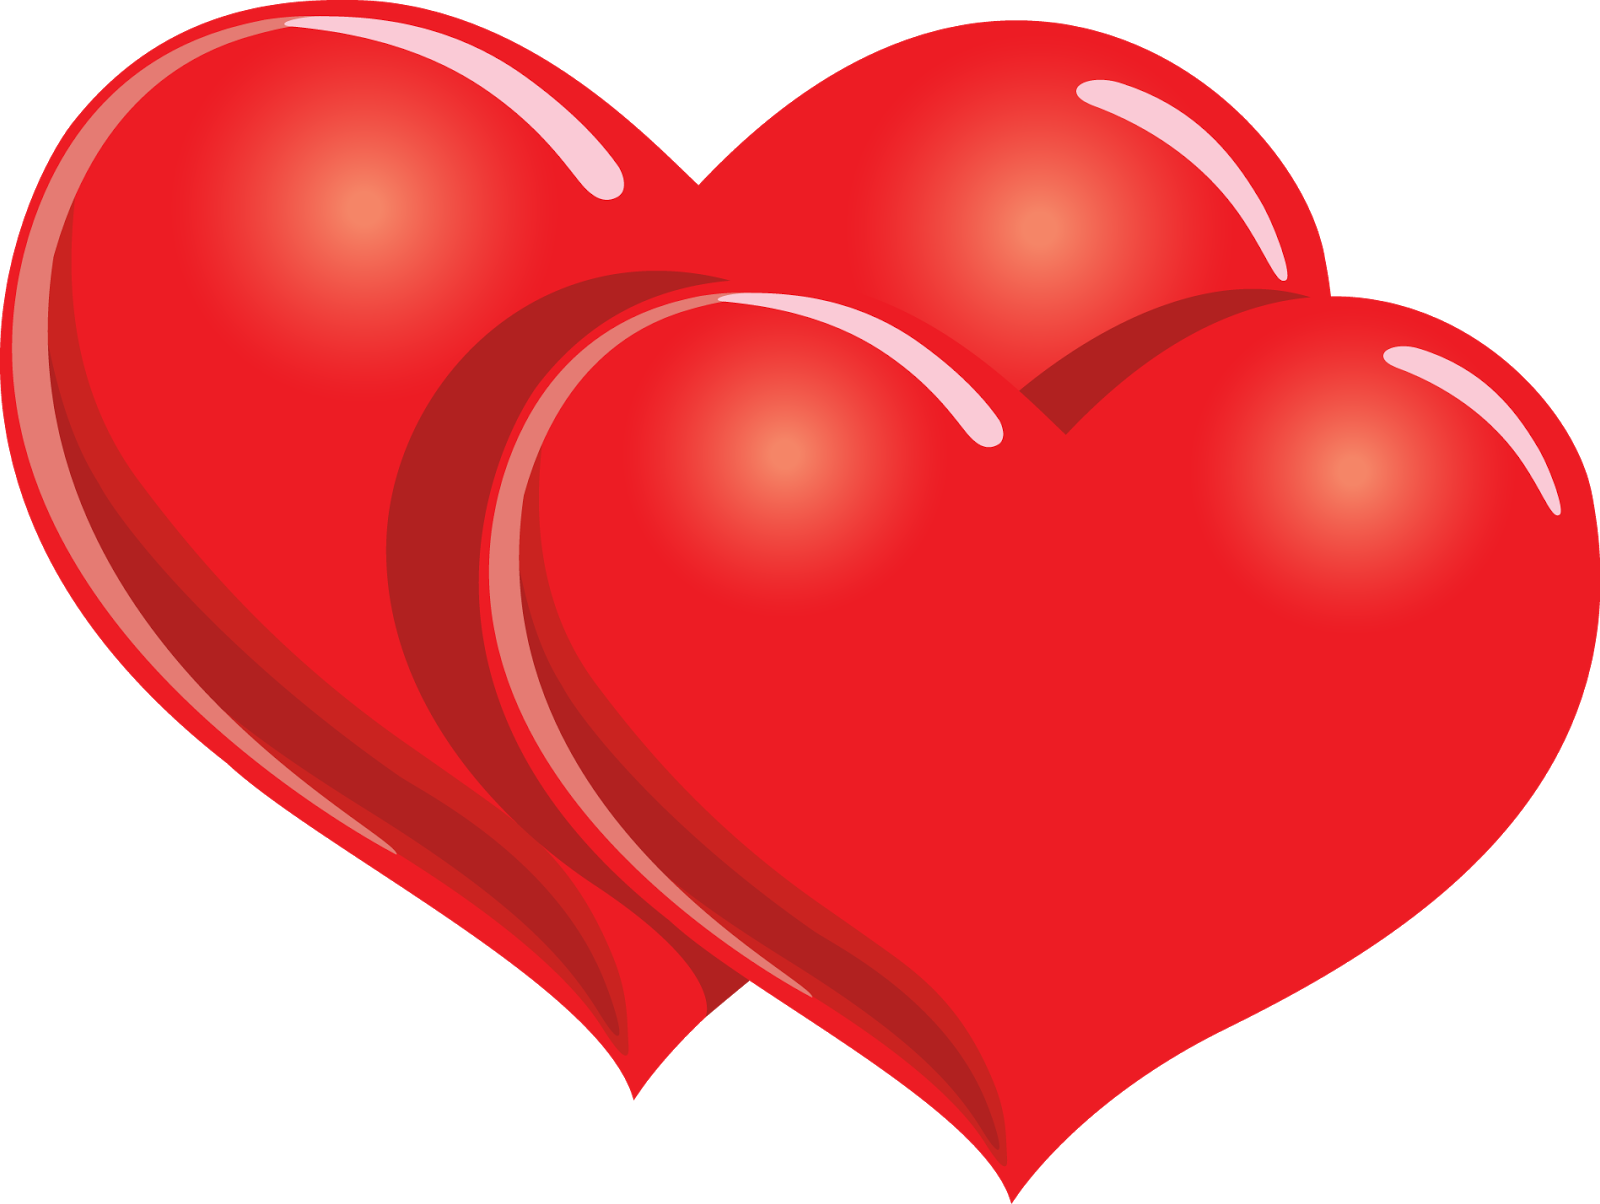 Heart n Love valentines day HD wallpapers 2013   Full HD photo 1600x1204